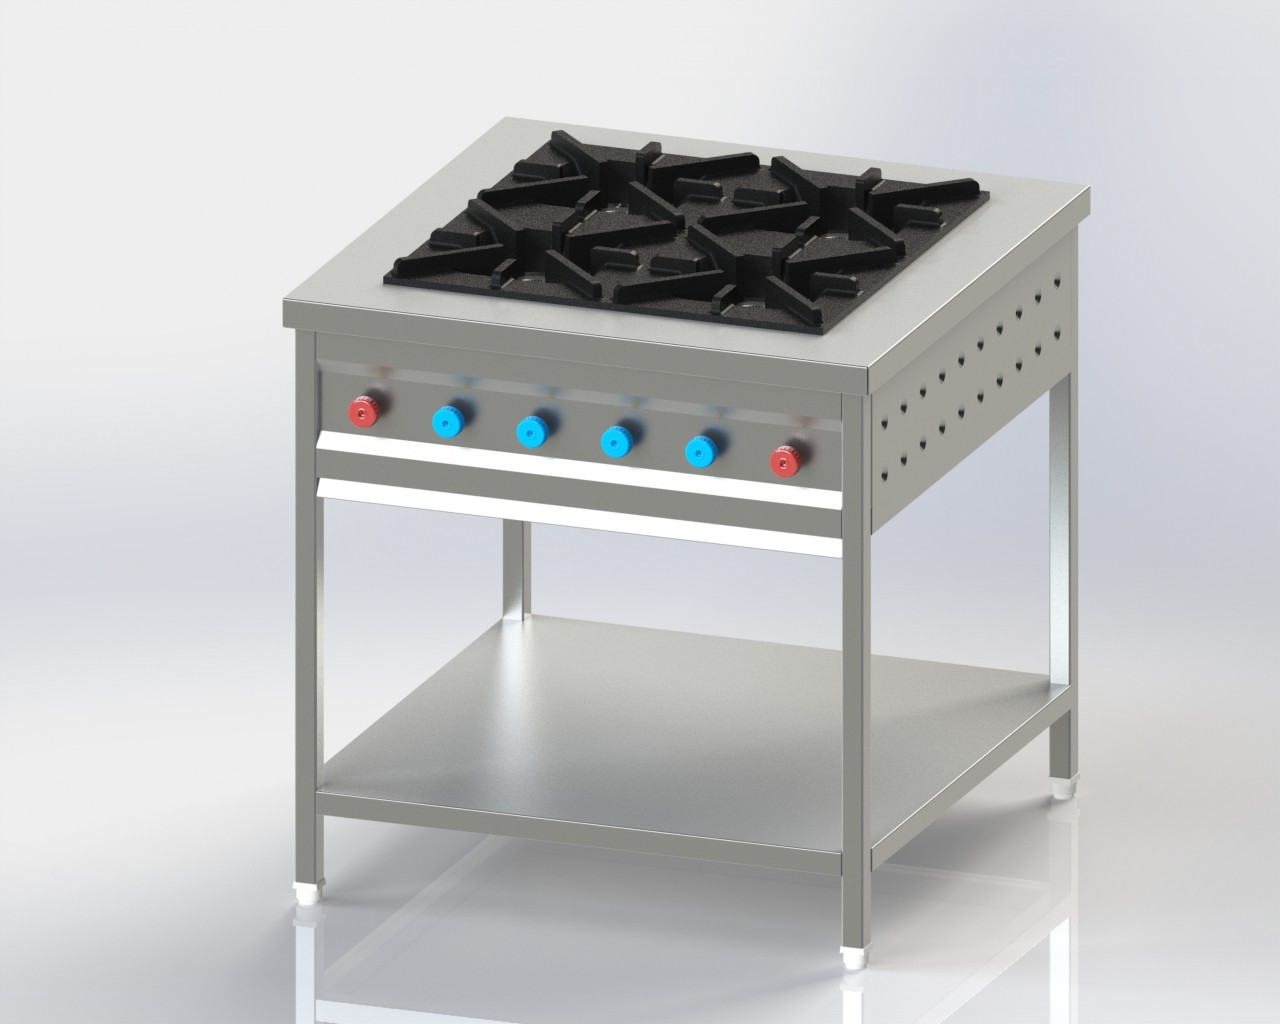 Four Burner without oven for cooking in commercial kitchen